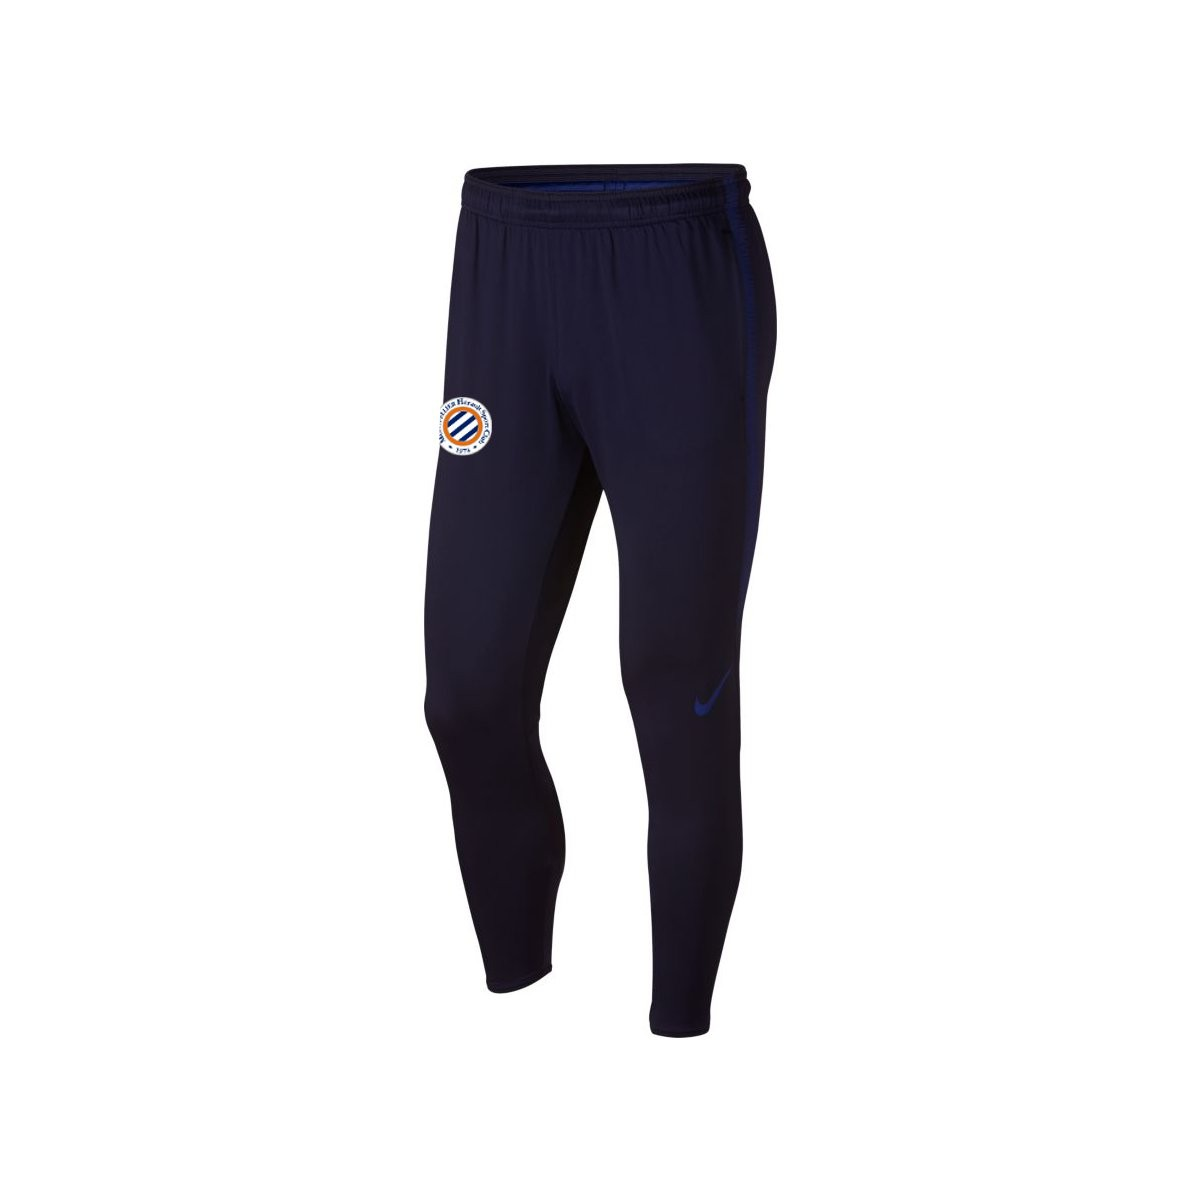 Boutique Pantalon Officielle Mhsc NikeLa Training Du K3T1cFJl